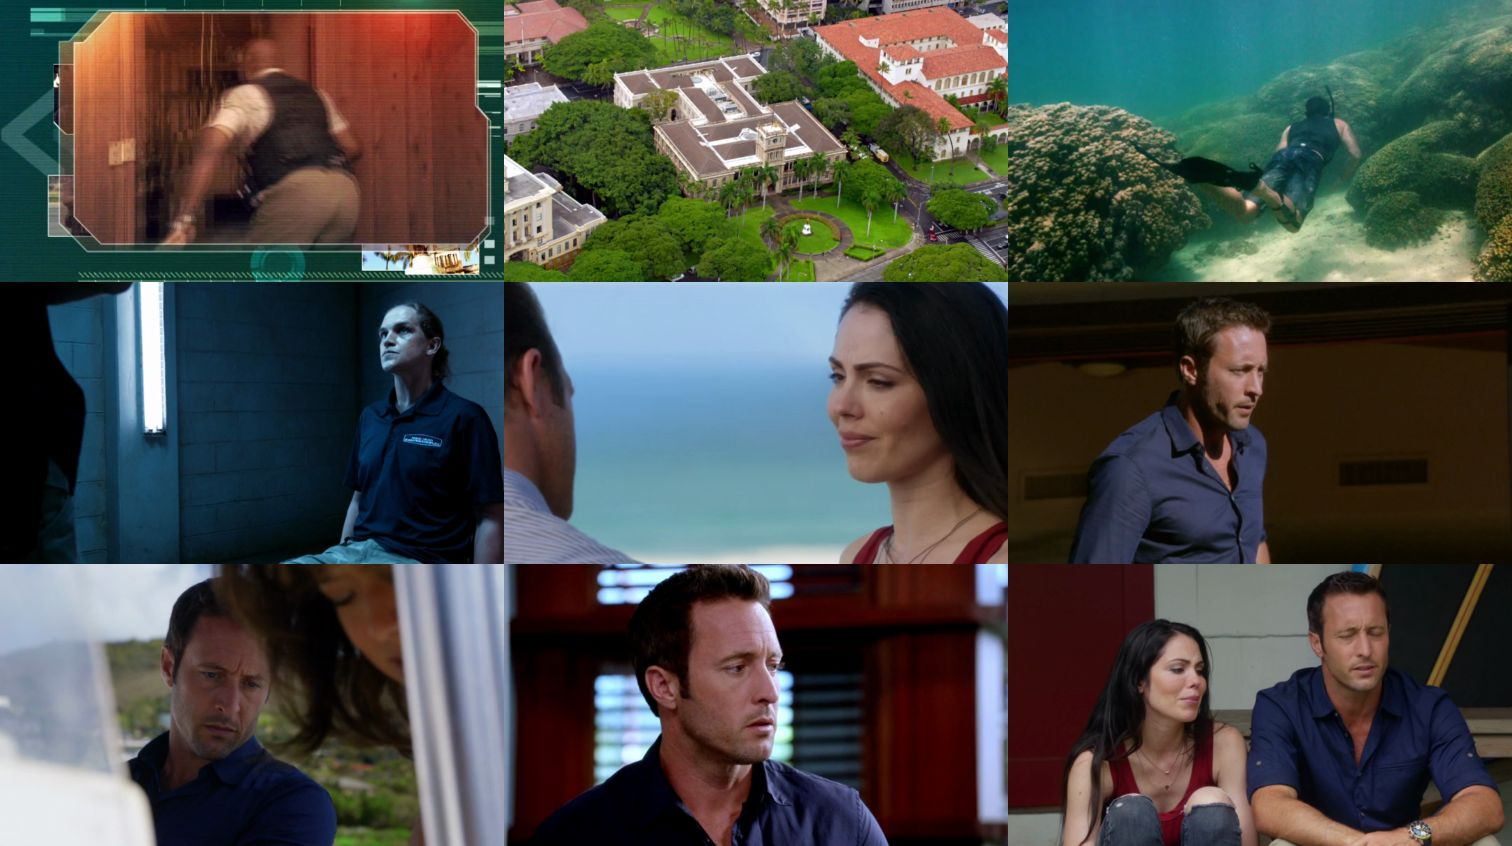 Hawaii Five-0 2010 S06E03 720p HDTV X264-DIMENSION